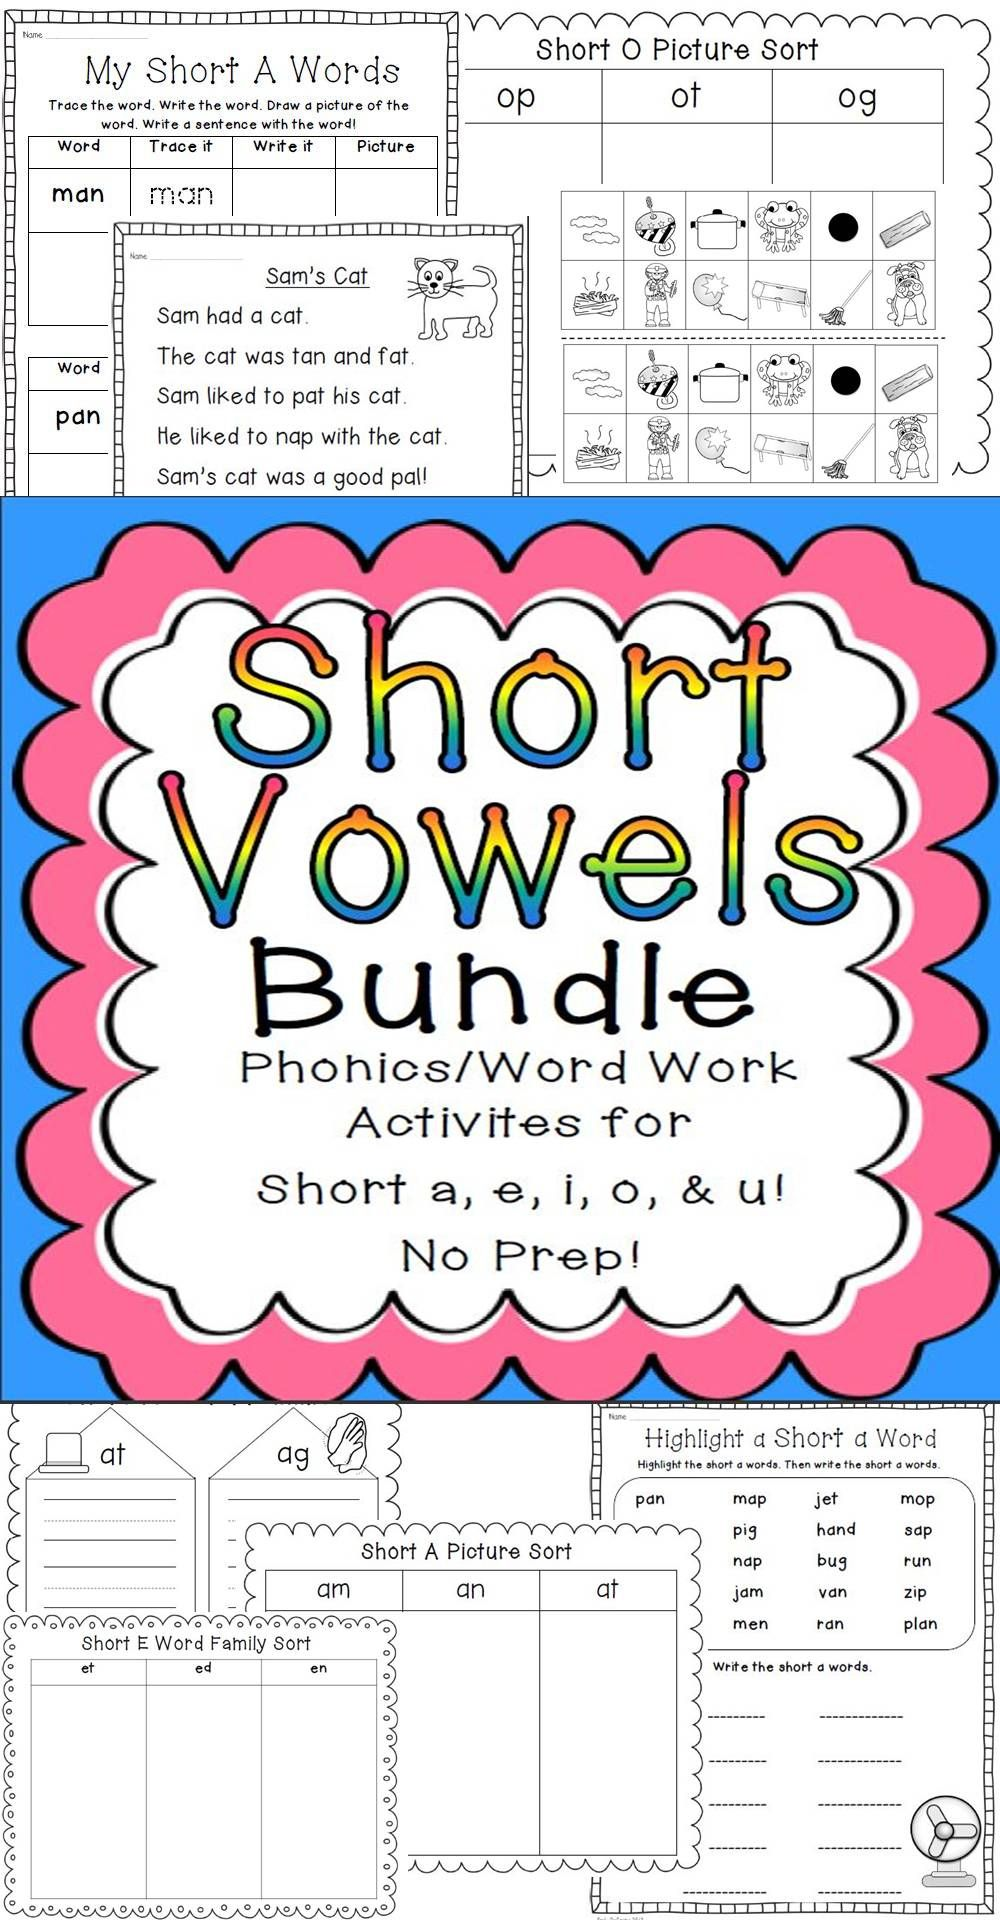 Short Vowels Bundle! Phonics/Word Work.